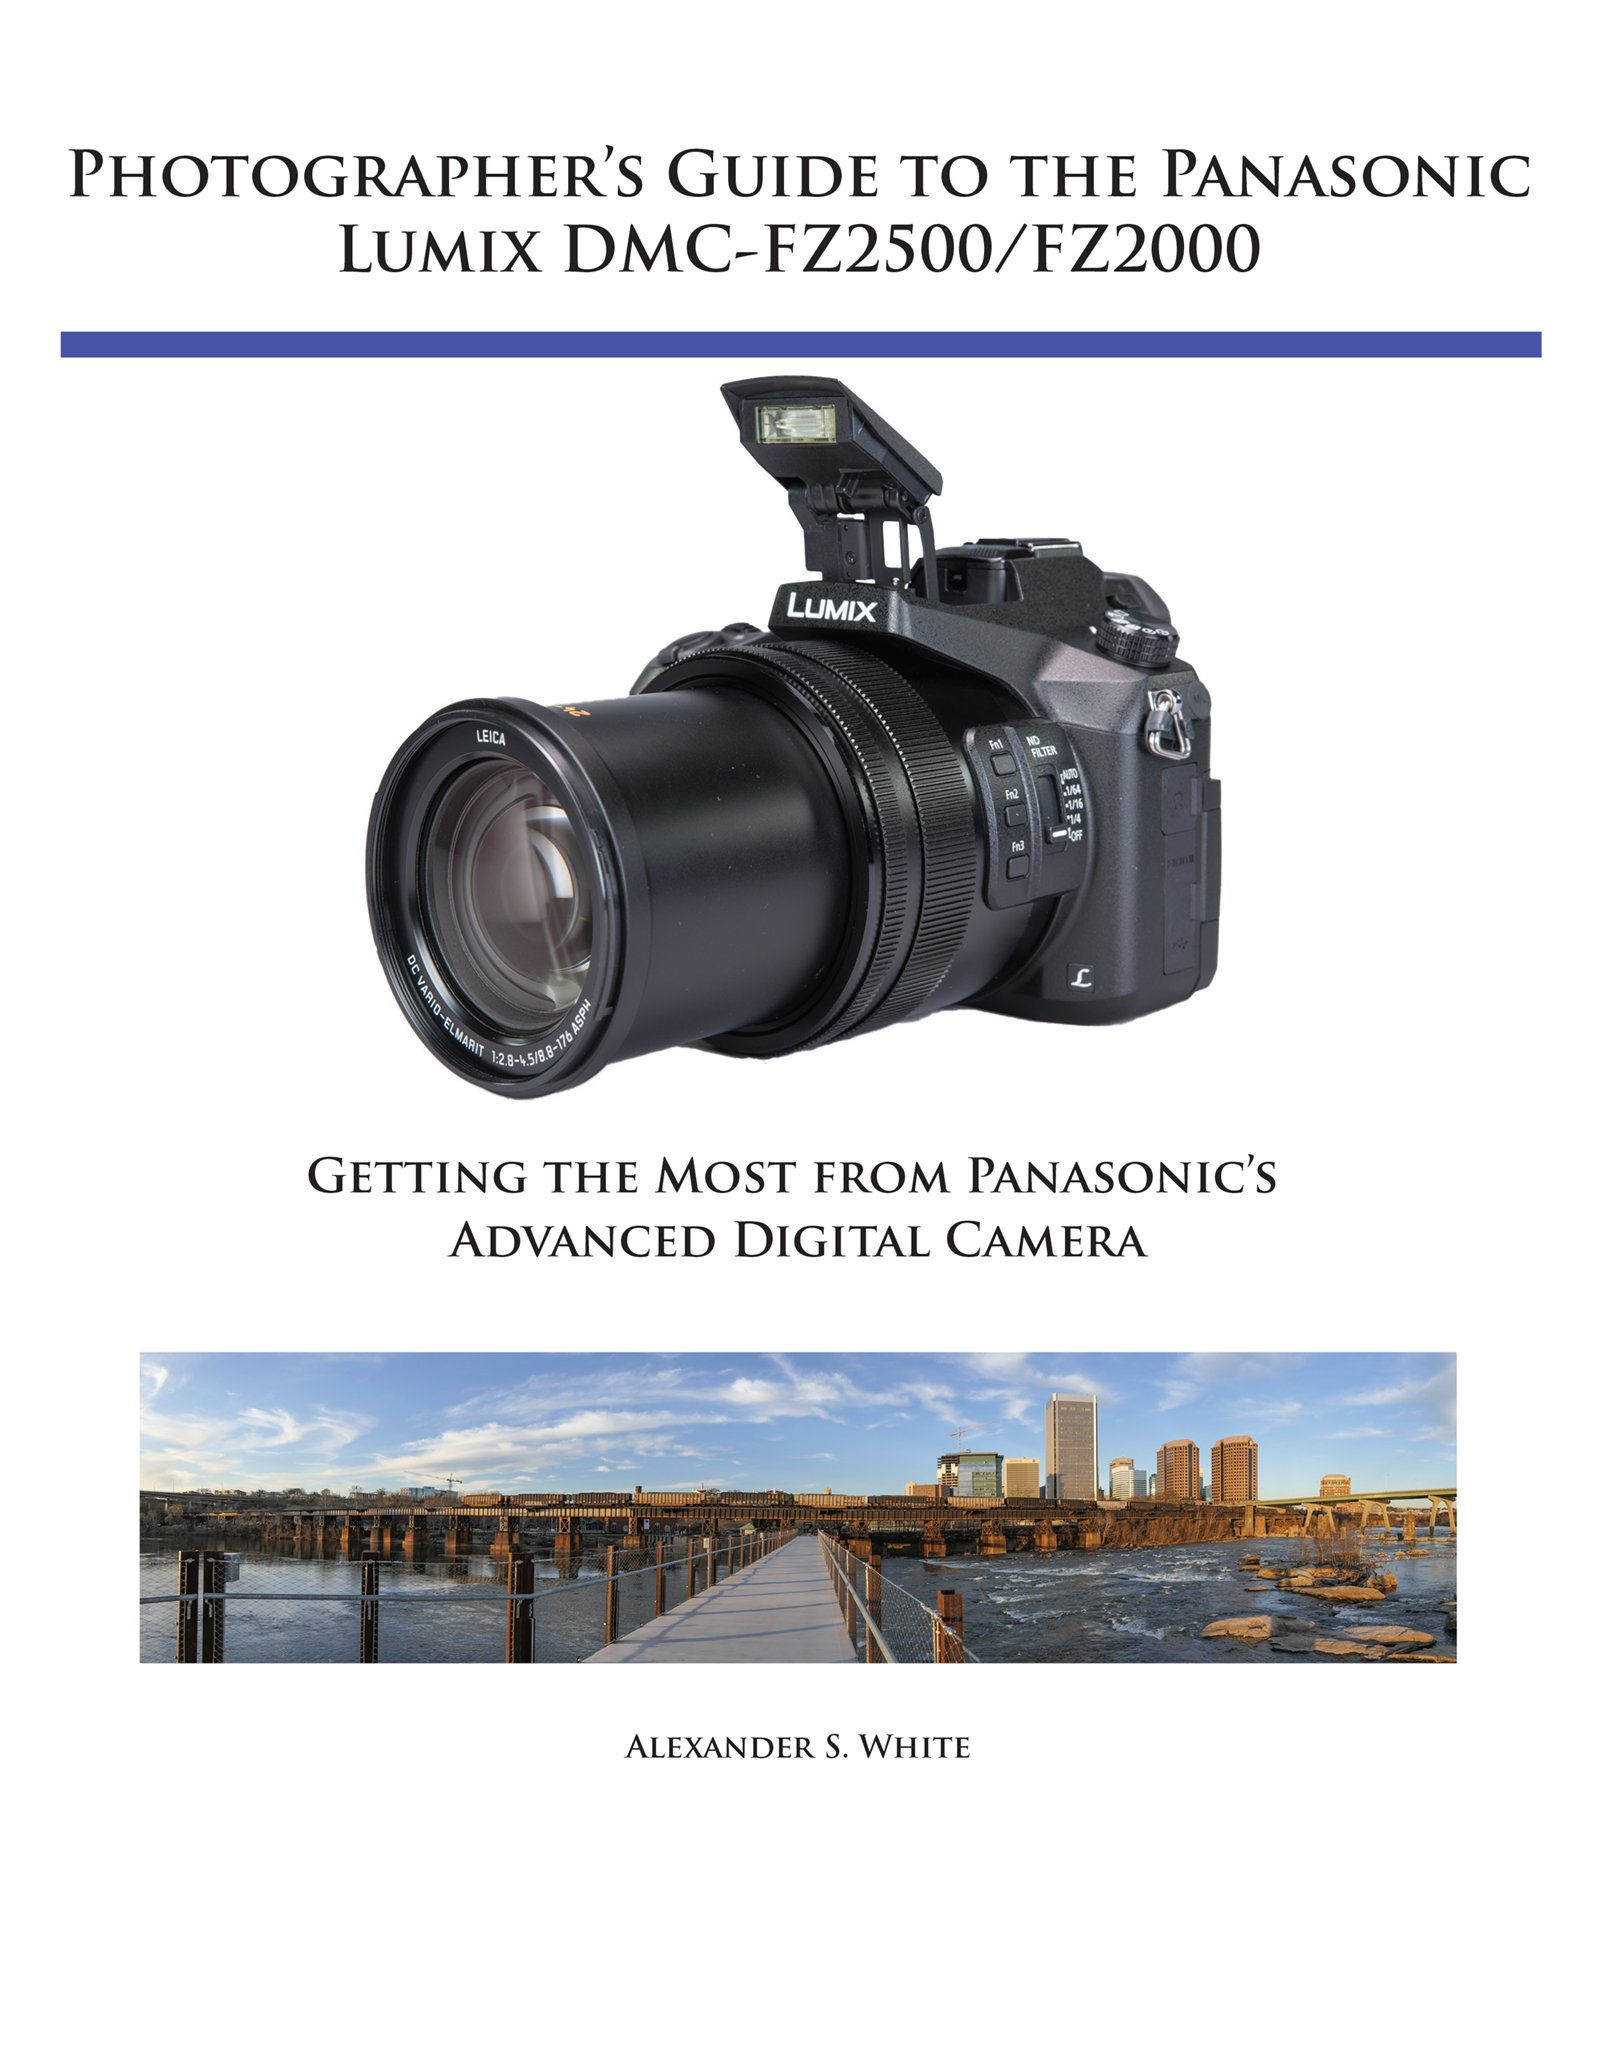 Amazon.com: Photographer's Guide to the Panasonic Lumix DMC-Fz2500/Fz2000:  Getting the Most from Panasonic's Advanced Digital Camera (9781937986681):  ...